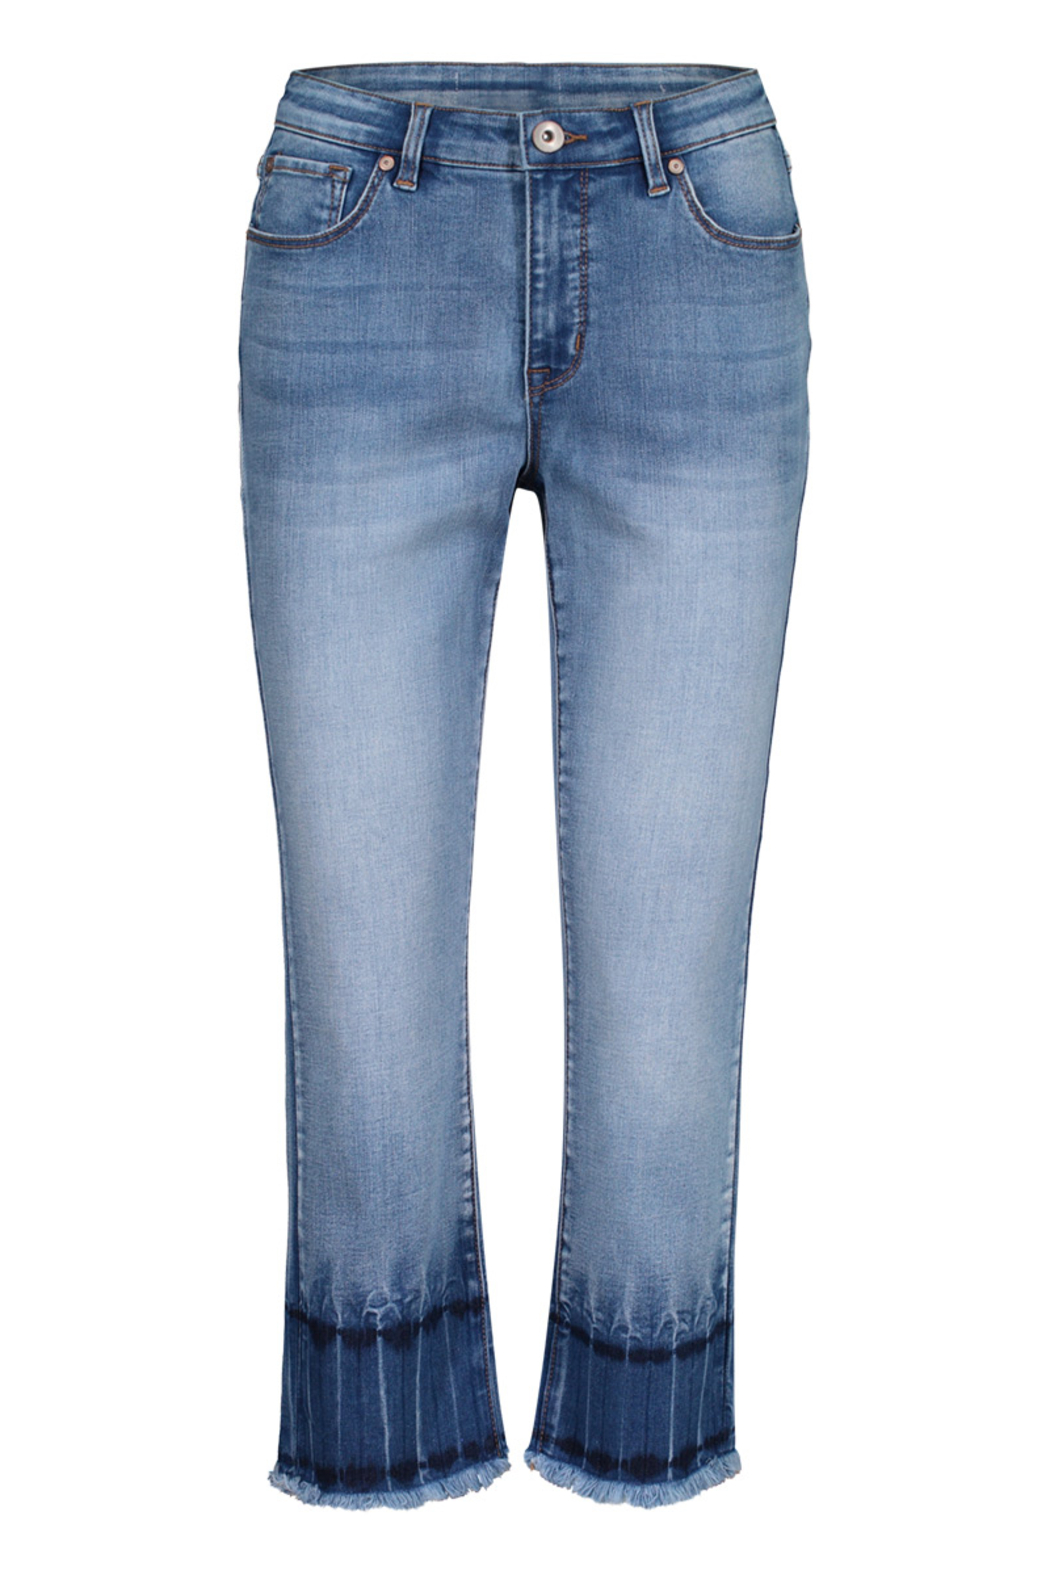 Tribal Jeans Blue Glow Ankle Jeans - Main Image